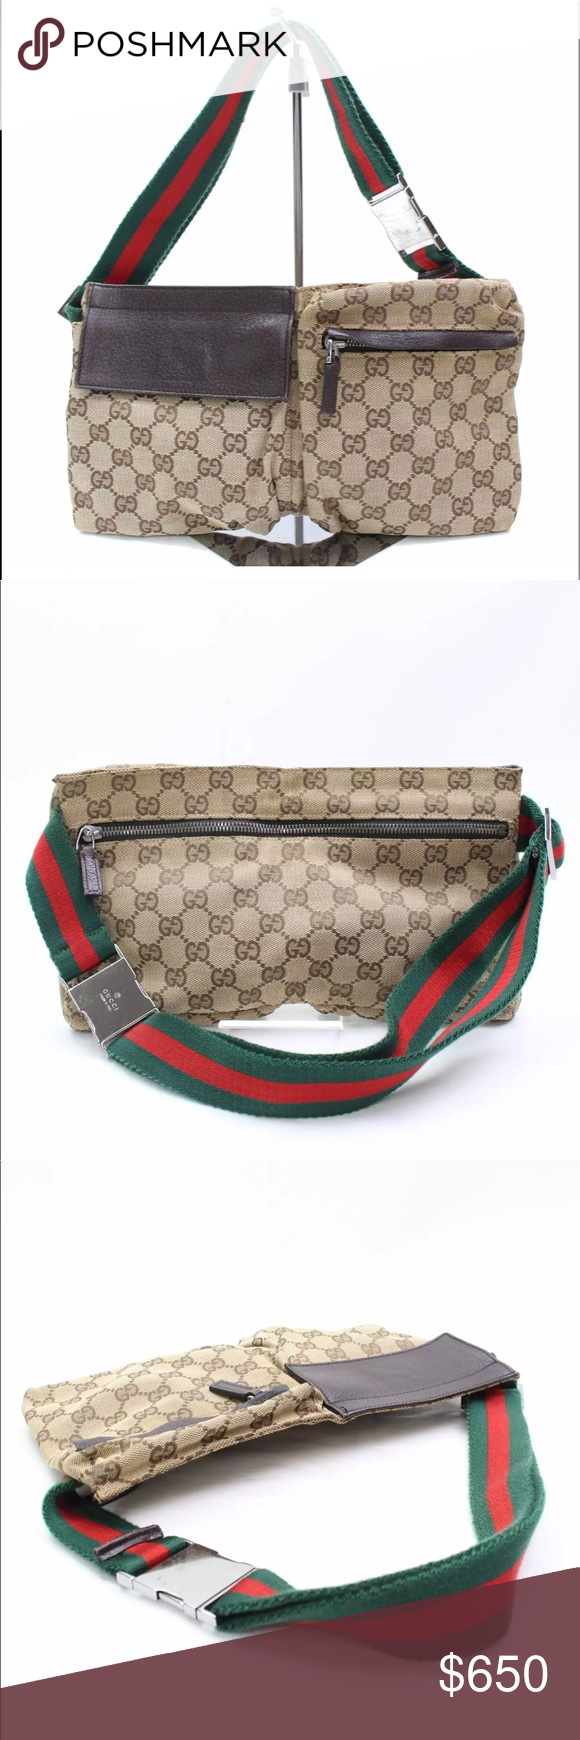 1a8f07293ad Authentic GUCCI waist bag fanny pack bum bag Authentic GUCCI waist bag fanny  pack